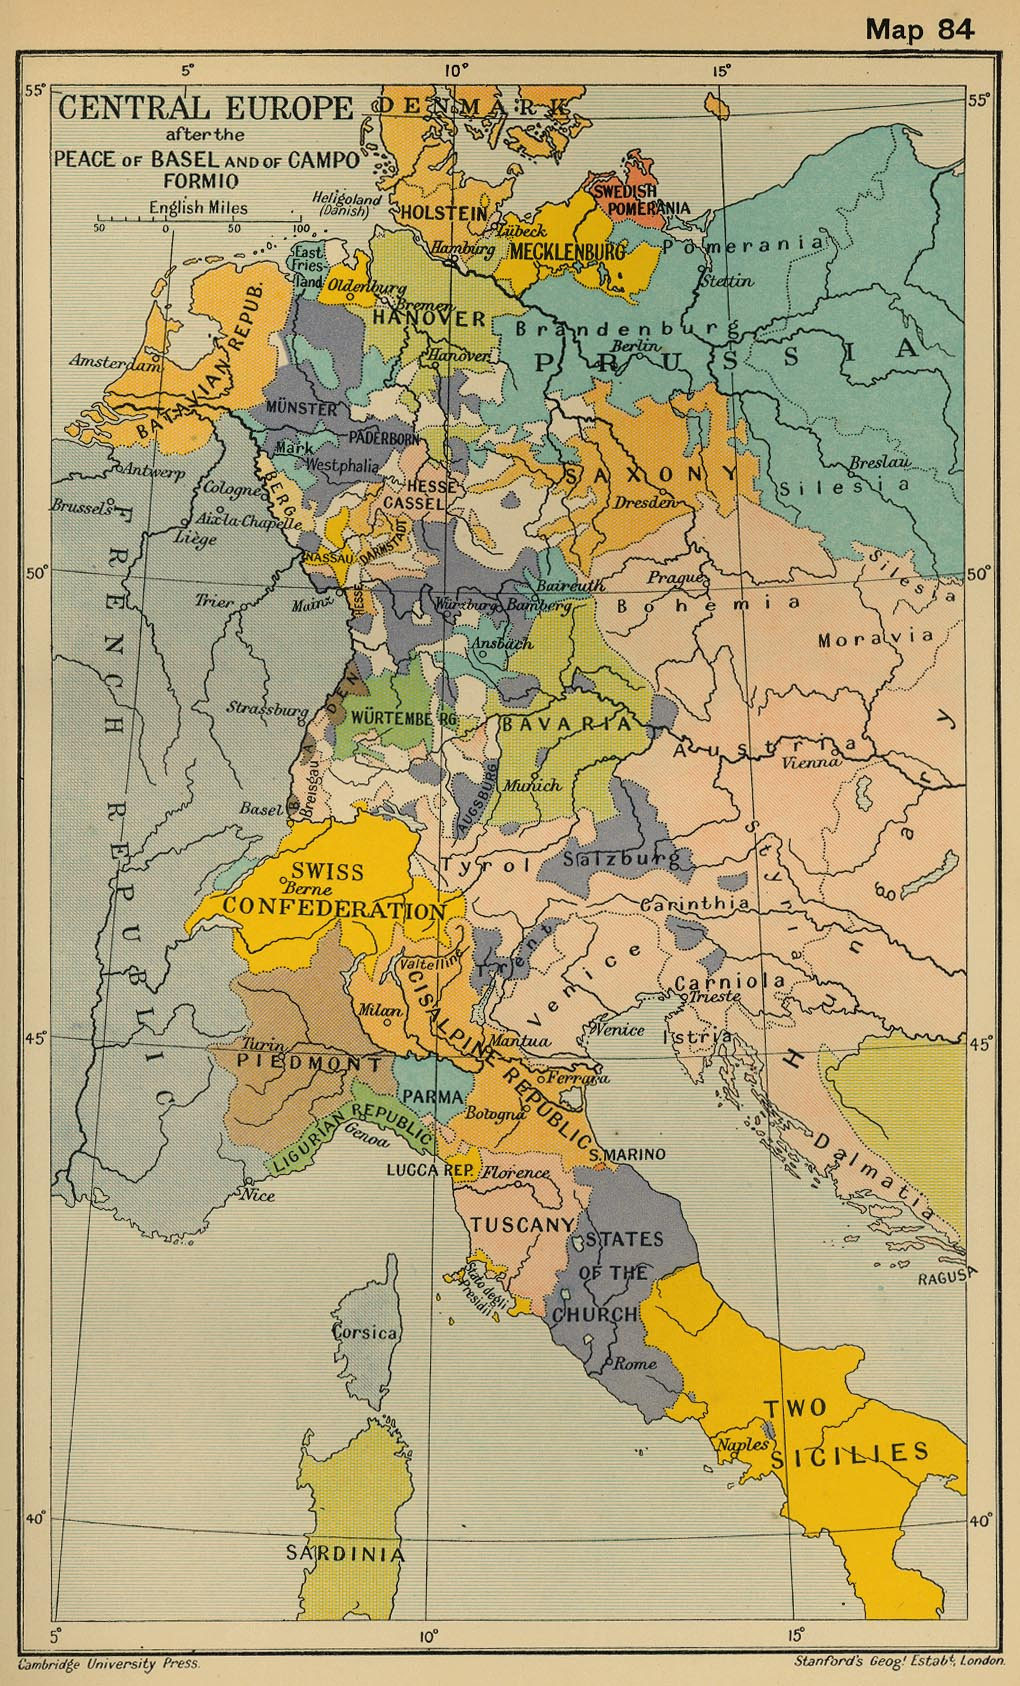 central europe after the peace of basel and of campo formio